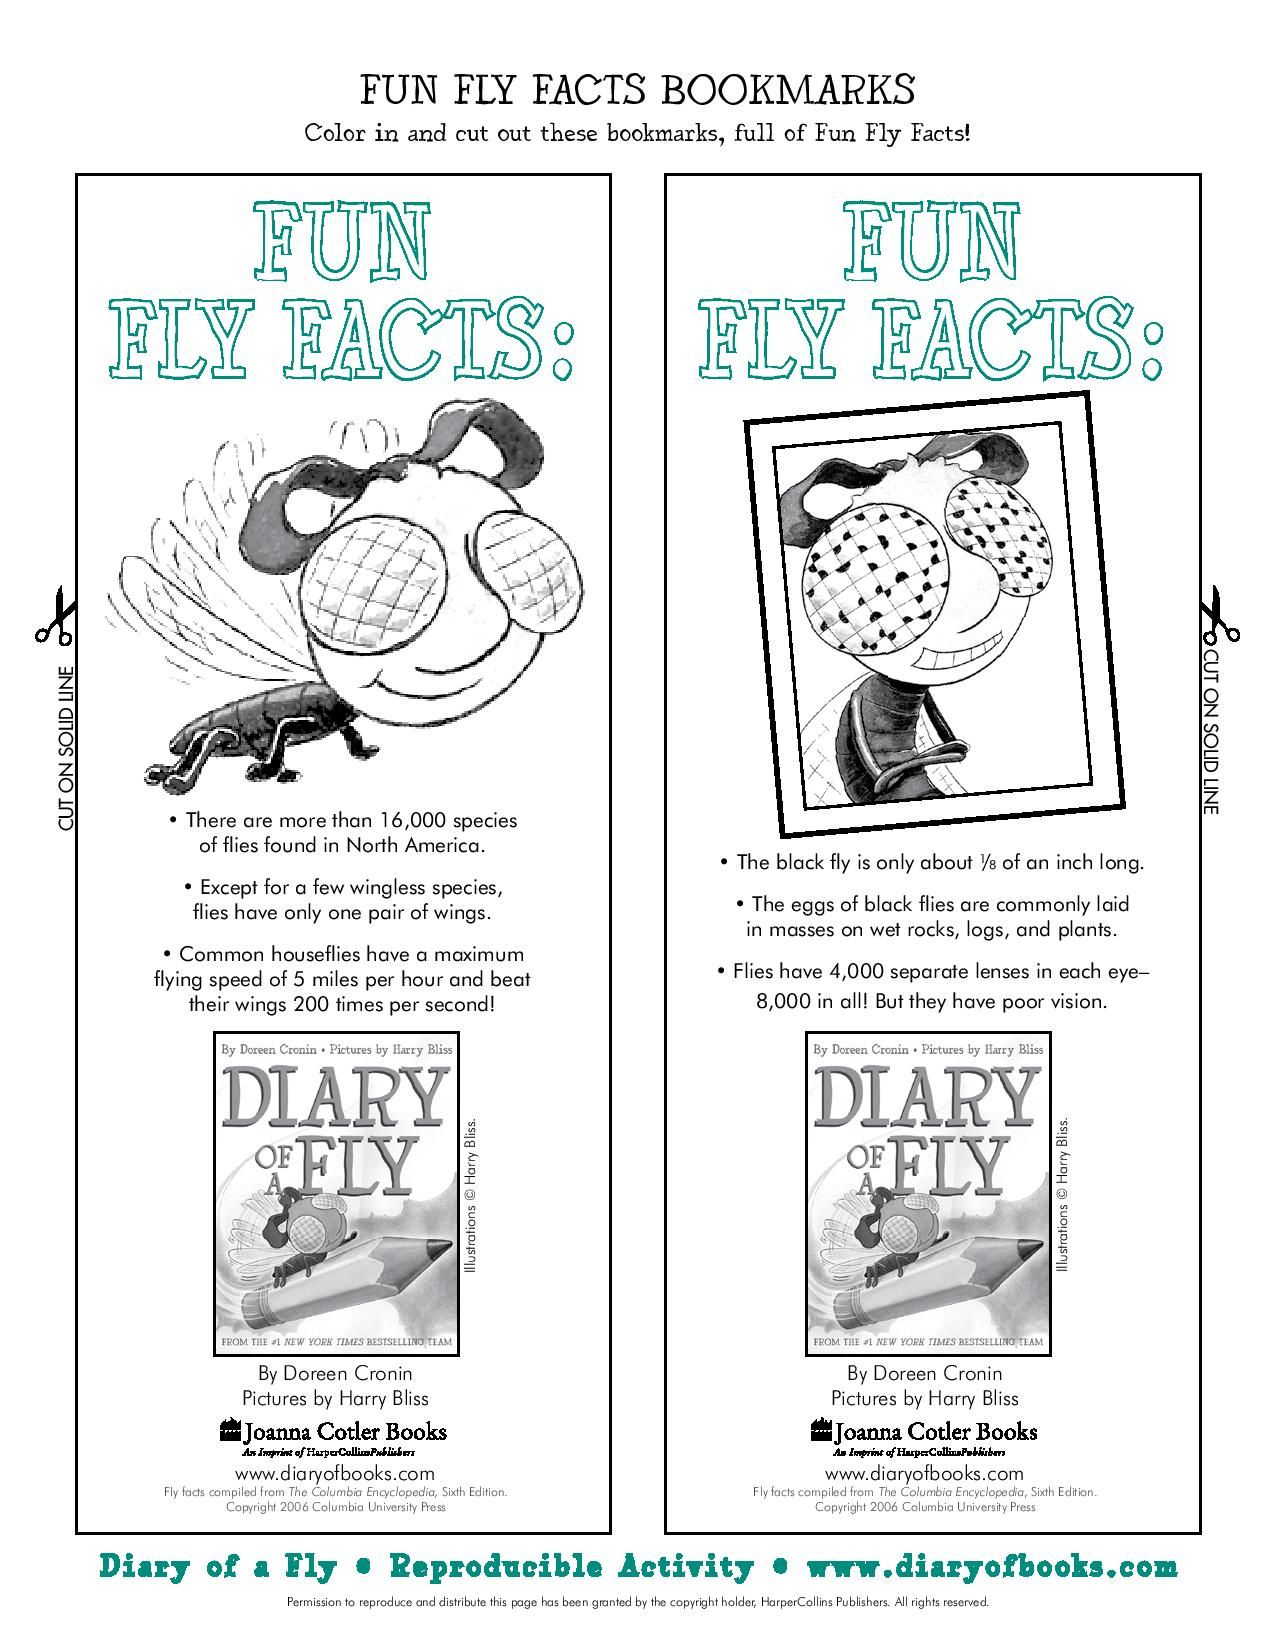 Print Your Own Diary Of A Fly Bookmarks